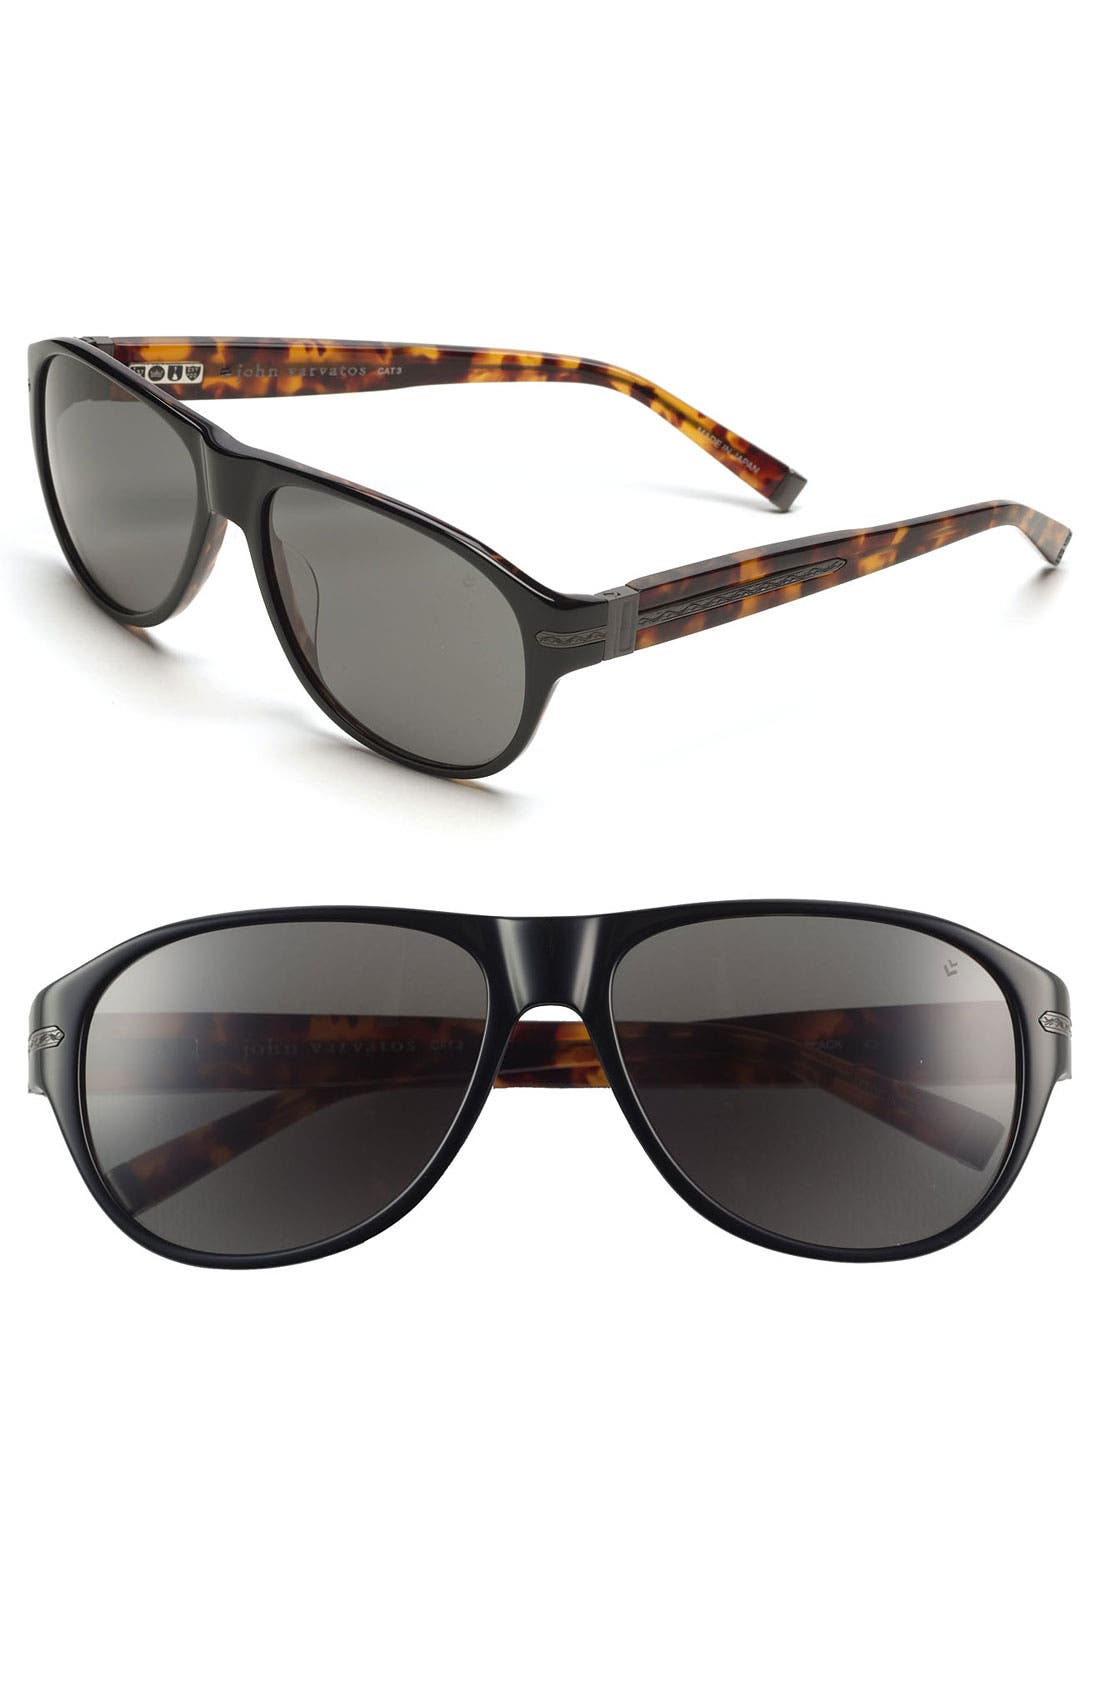 Main Image - John Varvatos Collection 59mm Sunglasses